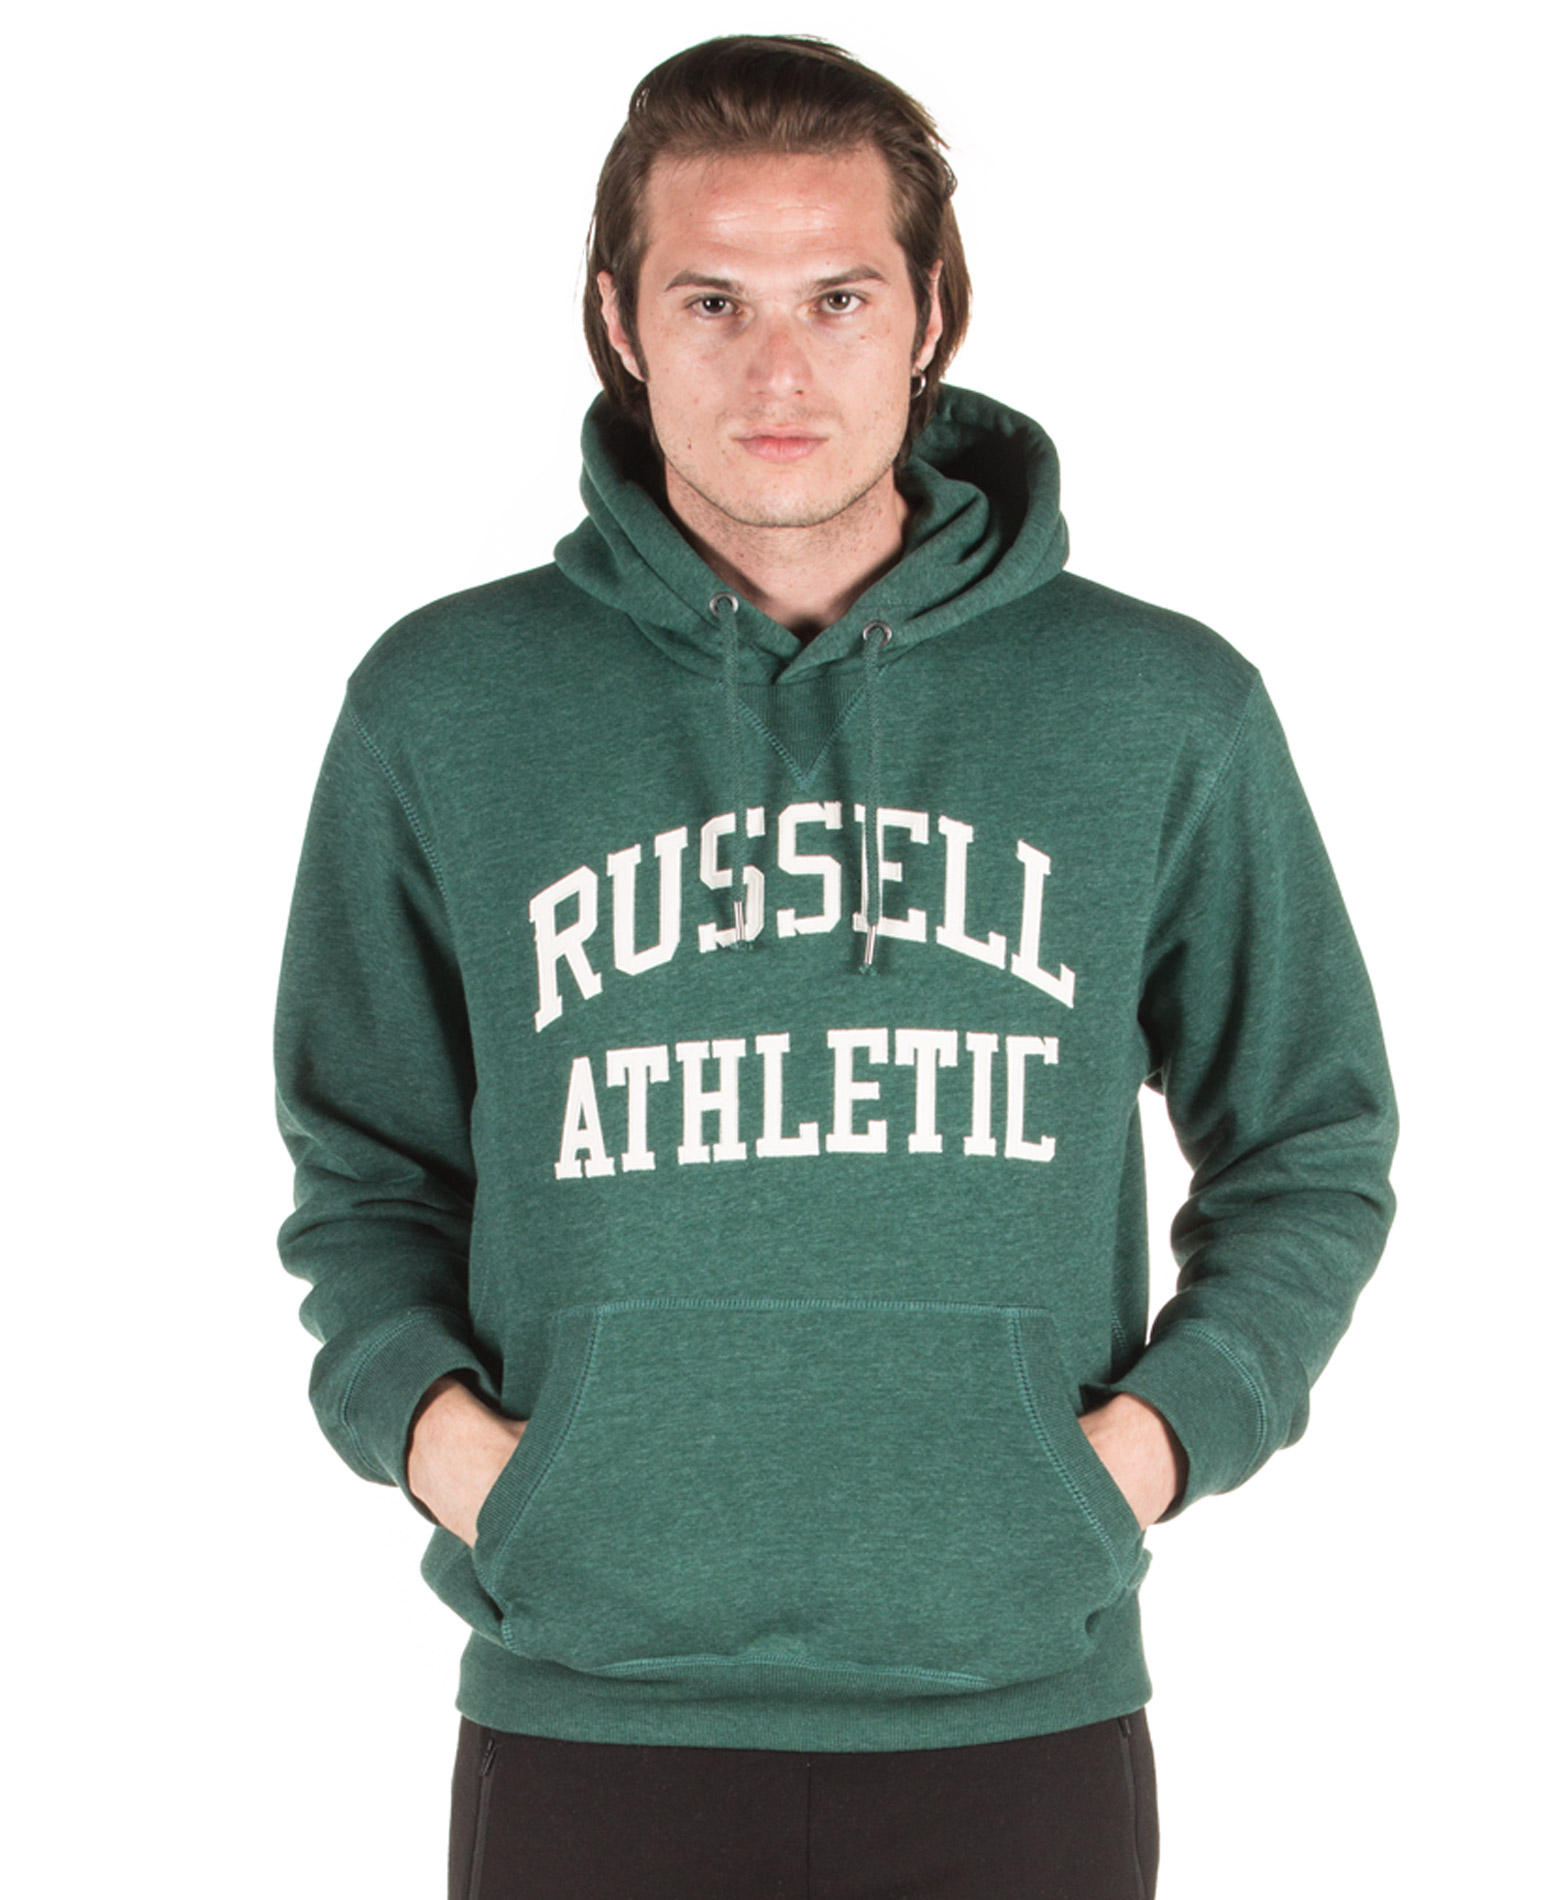 Russell Athletic A8-006-2-264 Πράσινο